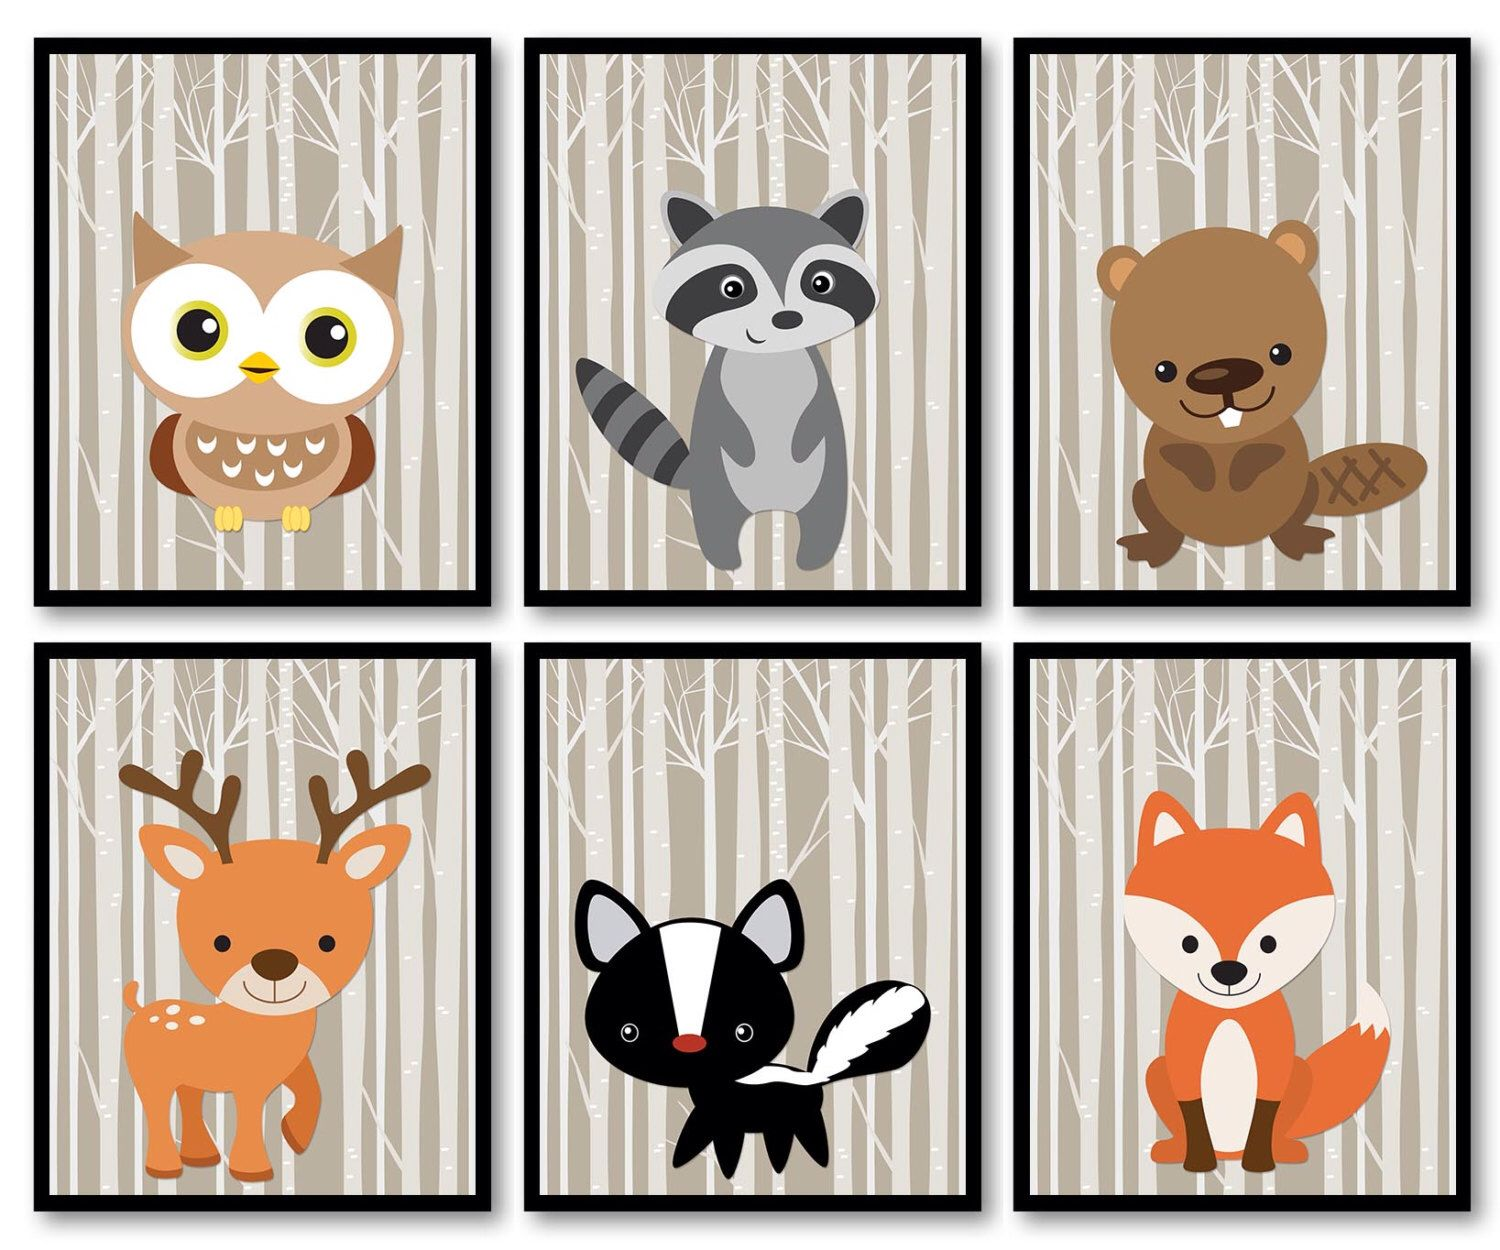 Woodland Animals Nursery Art Print Mix Match Owl Ra Beaver Deer Skunk Fox Trees Wild